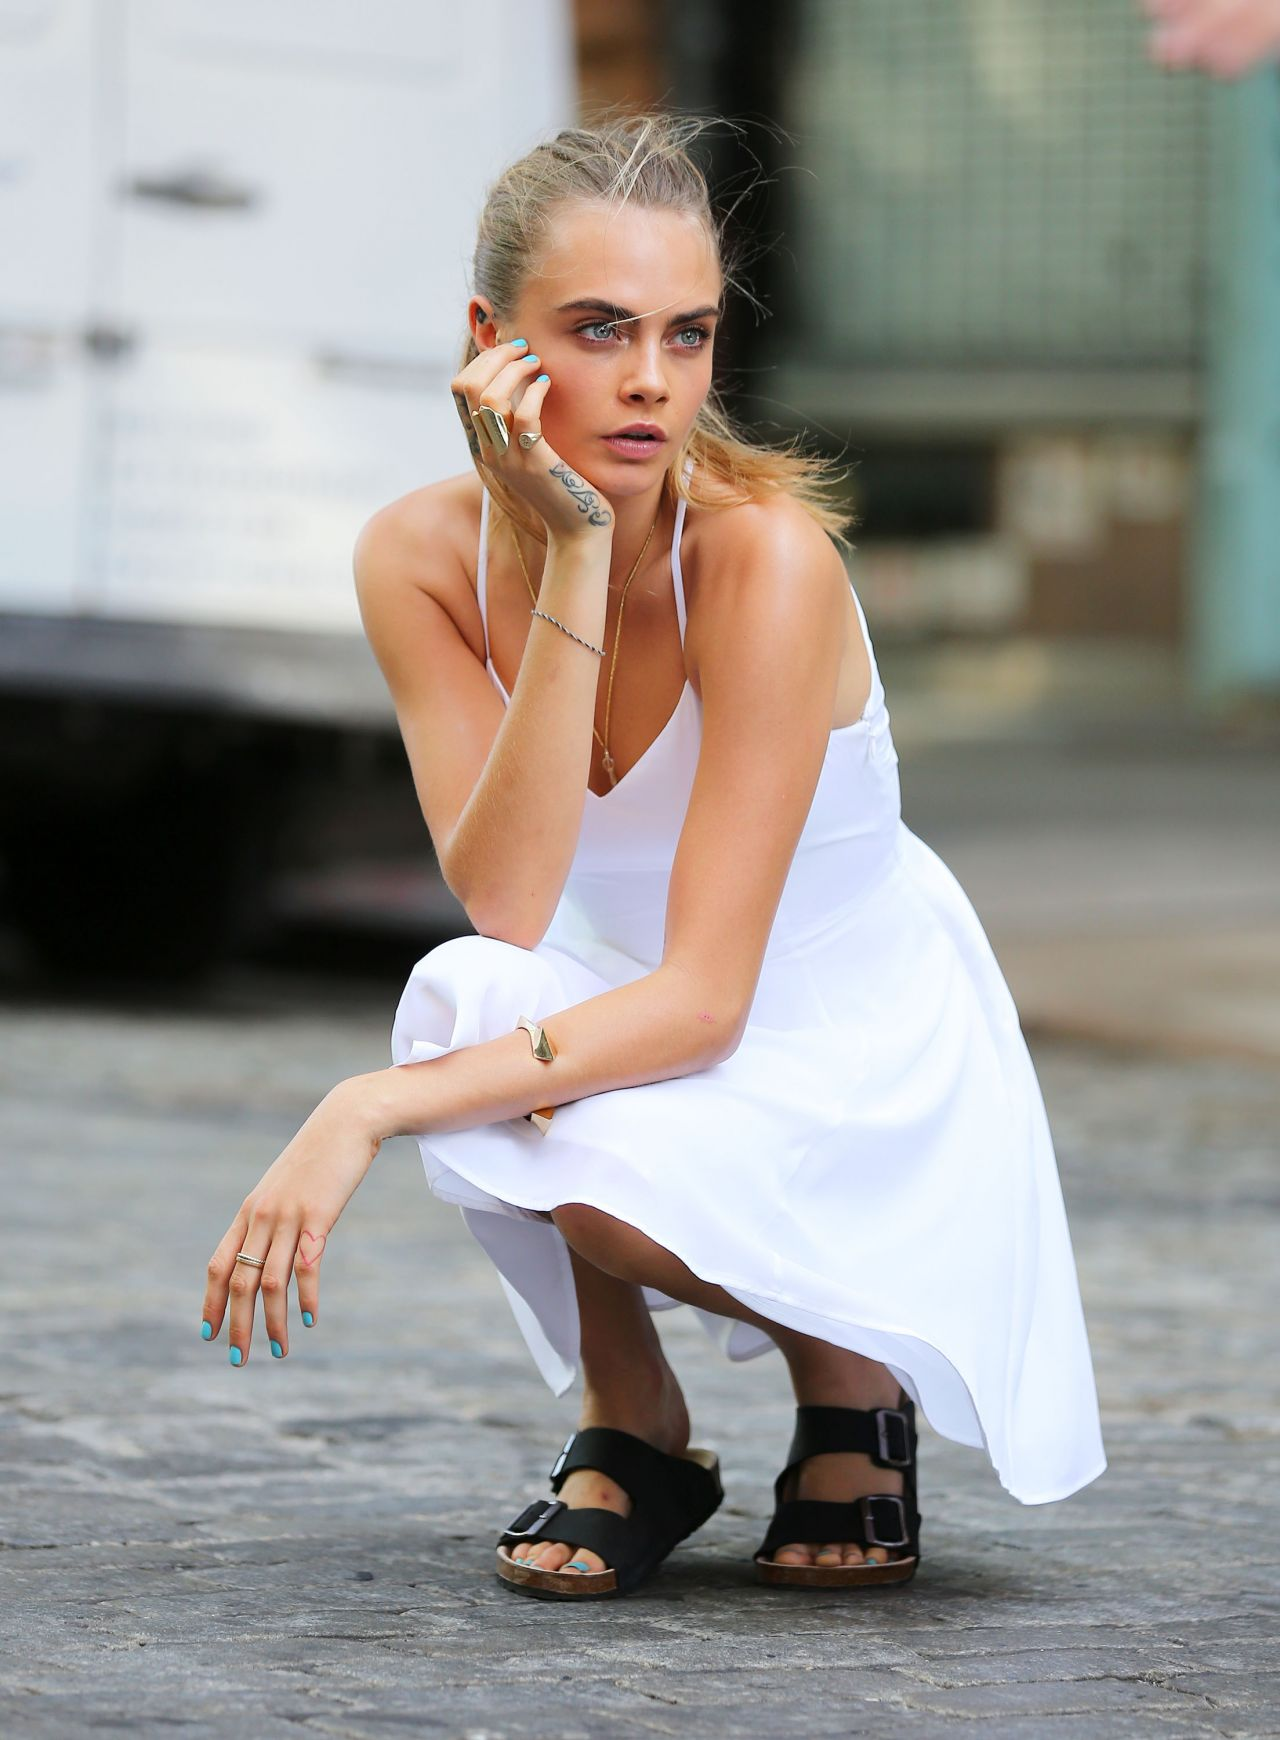 Cara Delevingne is one of many celebs who've been sporting Birkenstock shoes.